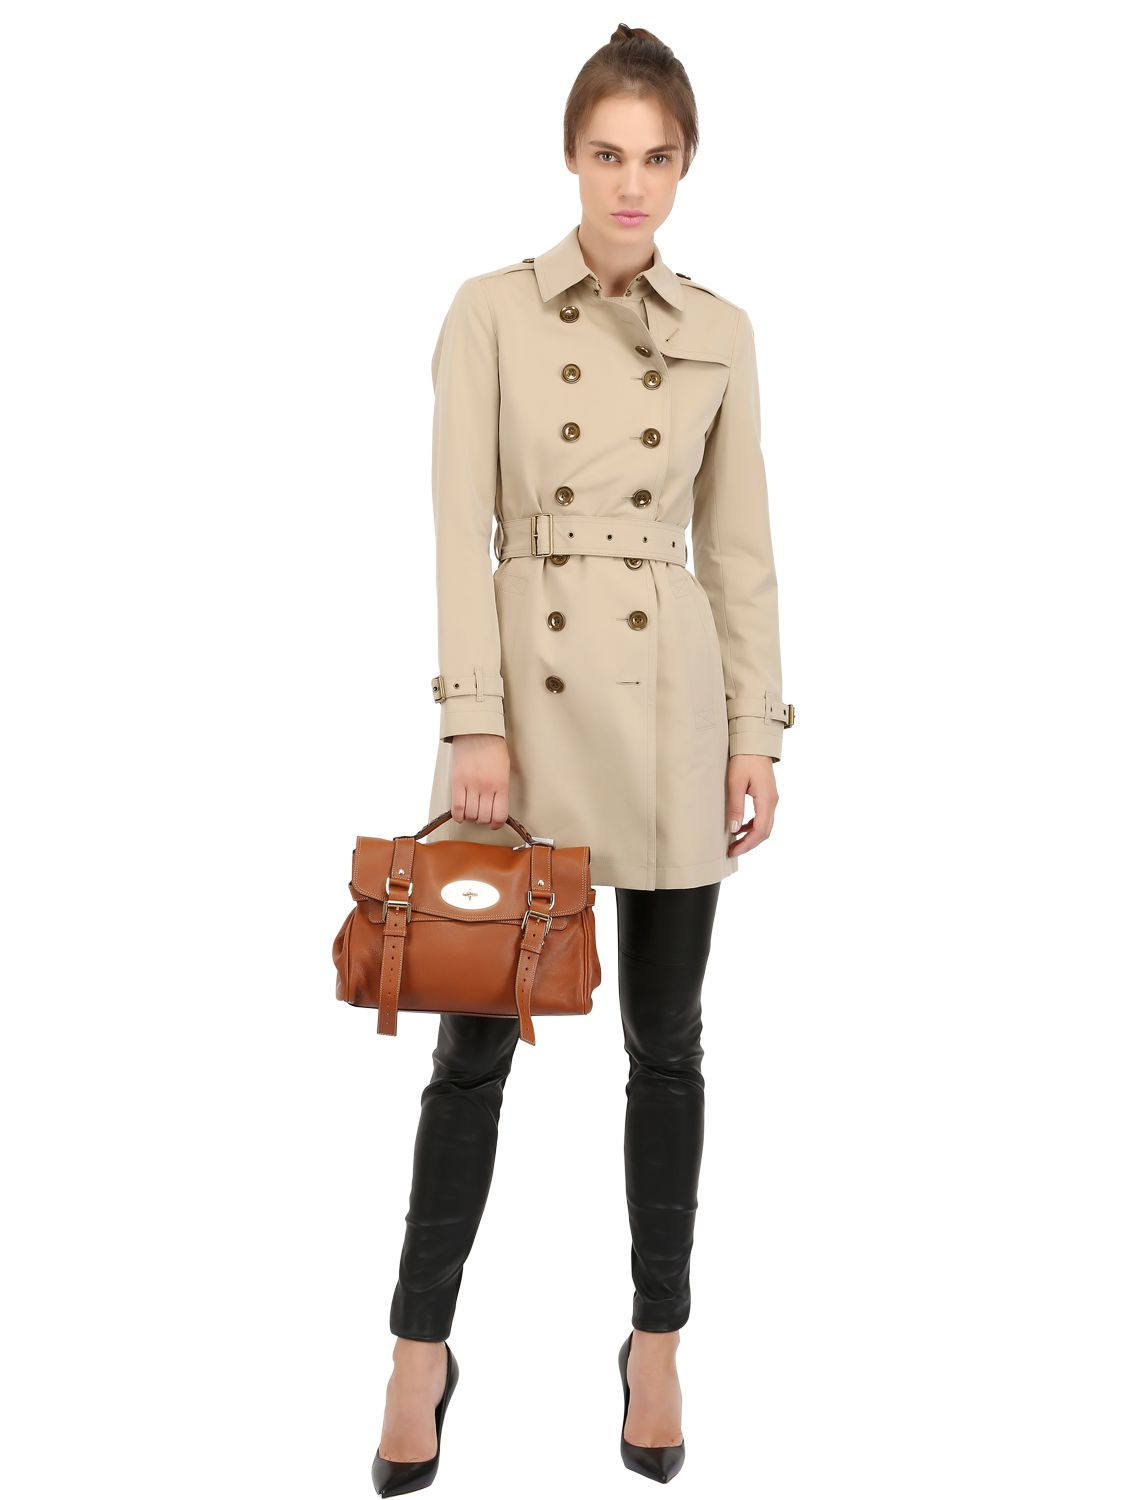 ... buy lyst mulberry alexa polished leather satchel in brown 582e5 d4cad 3c1a7c1be3c17